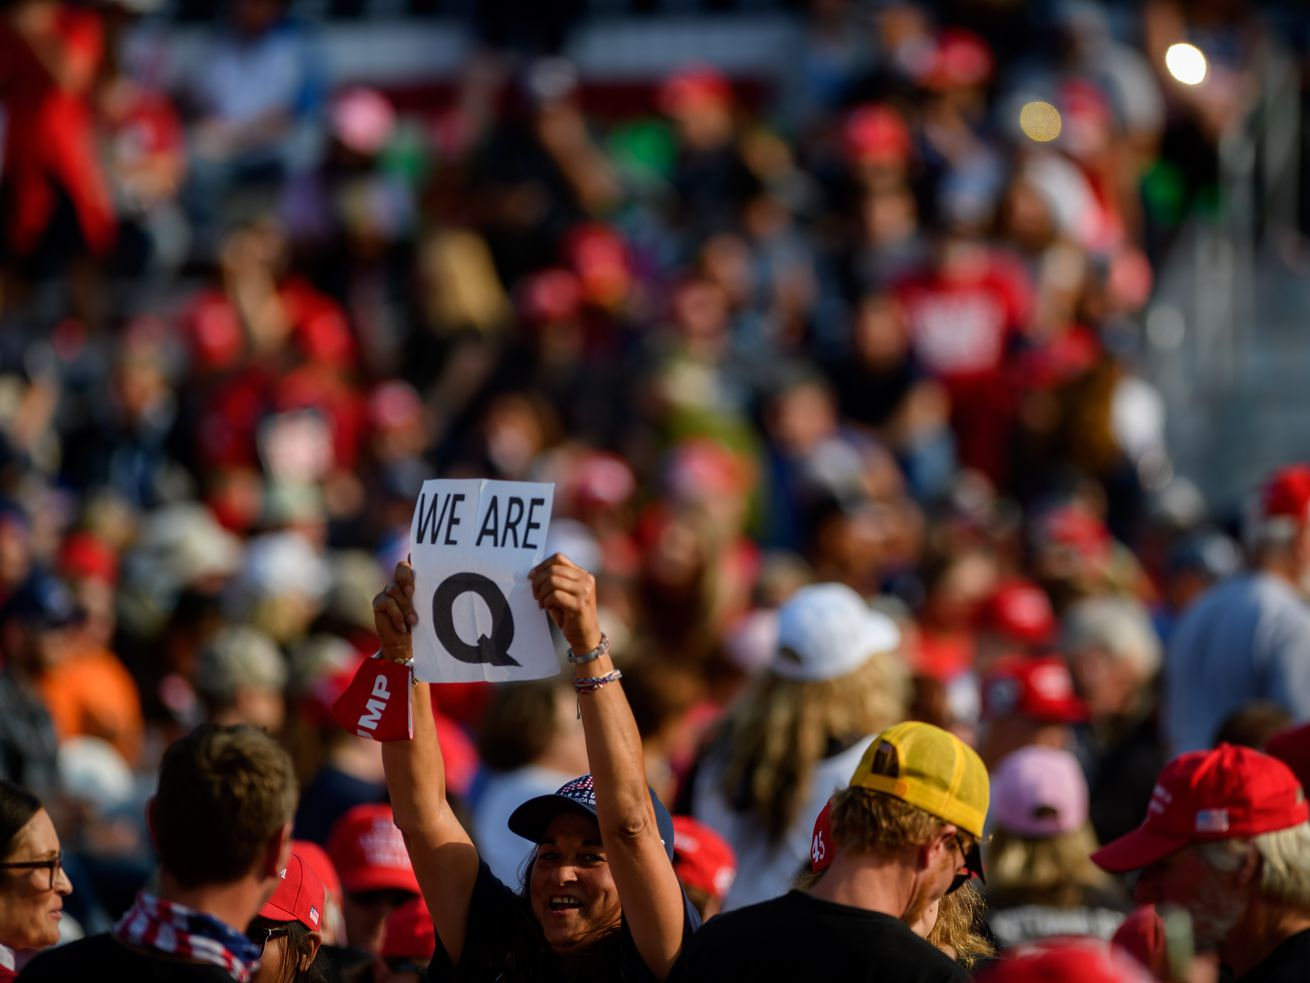 """A person in a crowd holds up a sign that reads """"We are Q."""""""